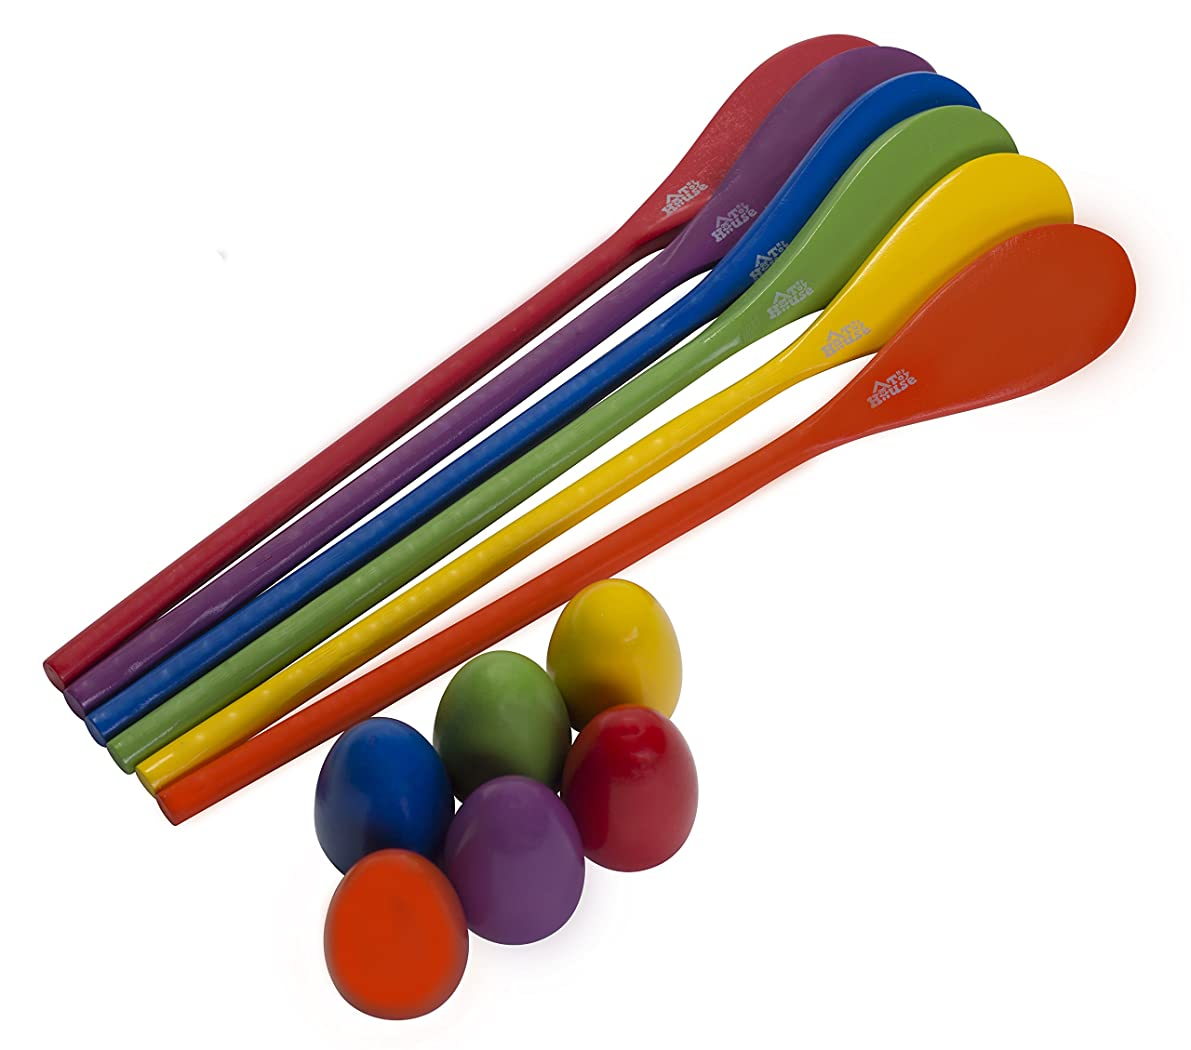 Egg and Spoon Race Game - 6 Eggs and 6 Spoons - Made of the Finest Wood - Fun Game for Parties, Birthdays etc. - Durable, Lightweight | Six Assorted Colors